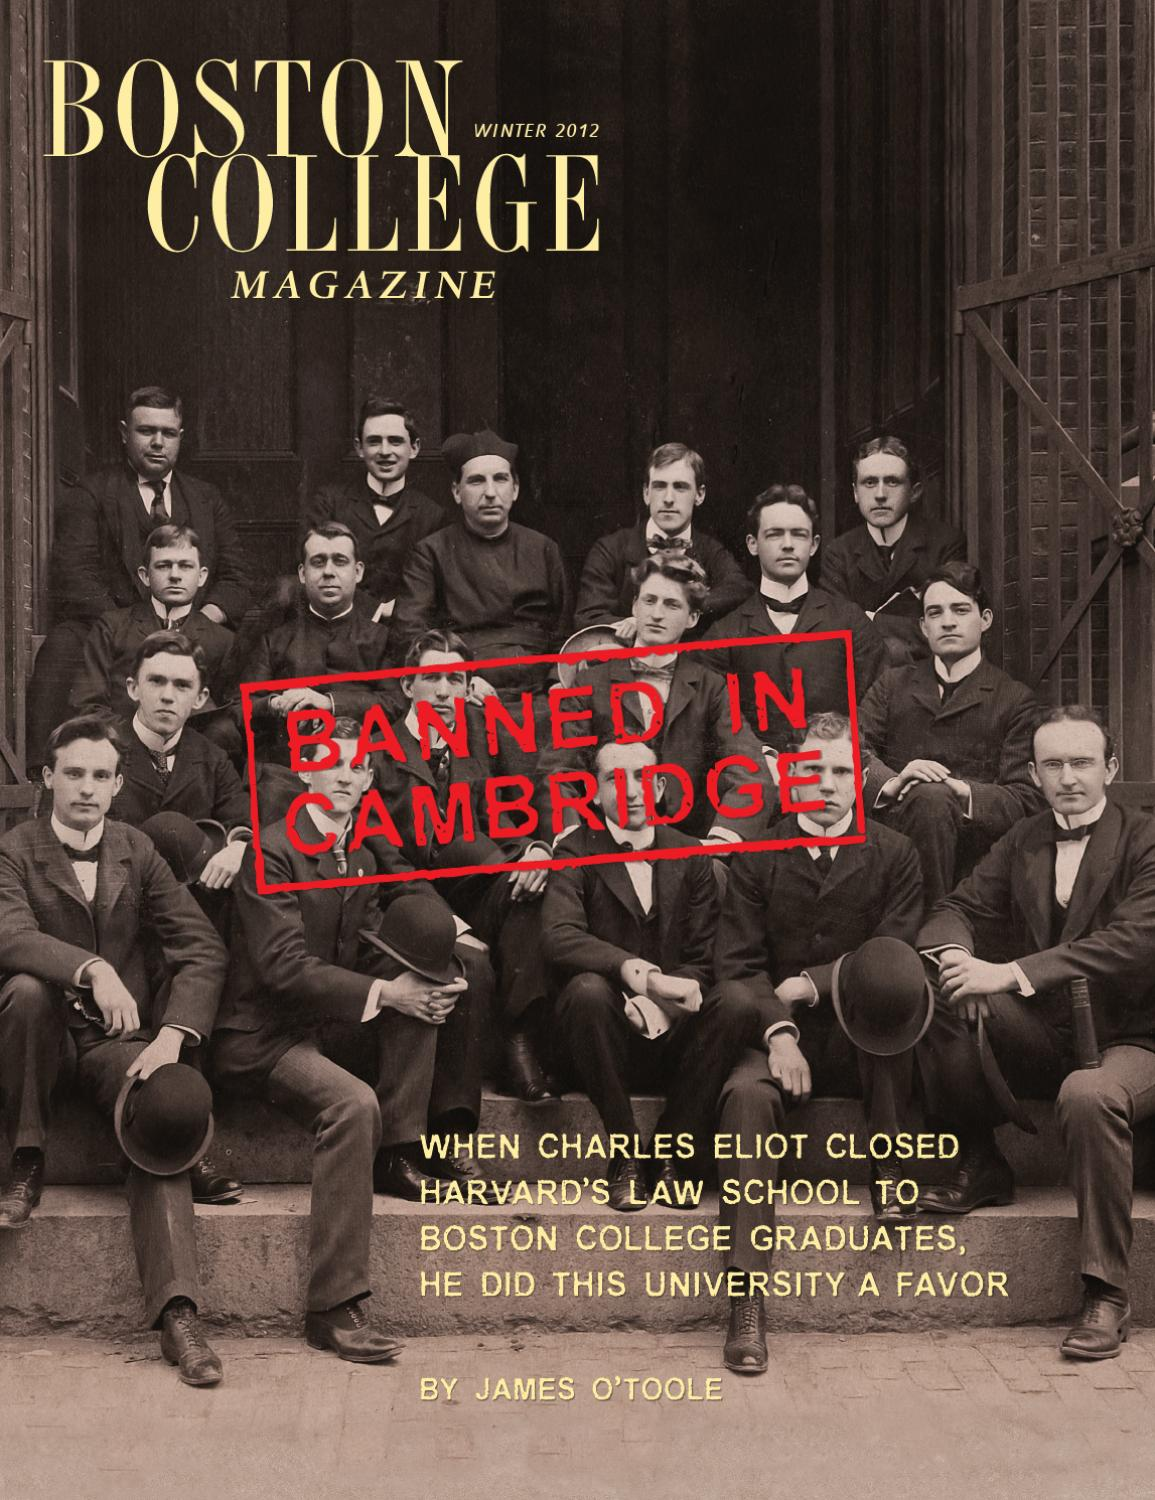 boston college magazine by boston college issuu boston college magazine winter 2012